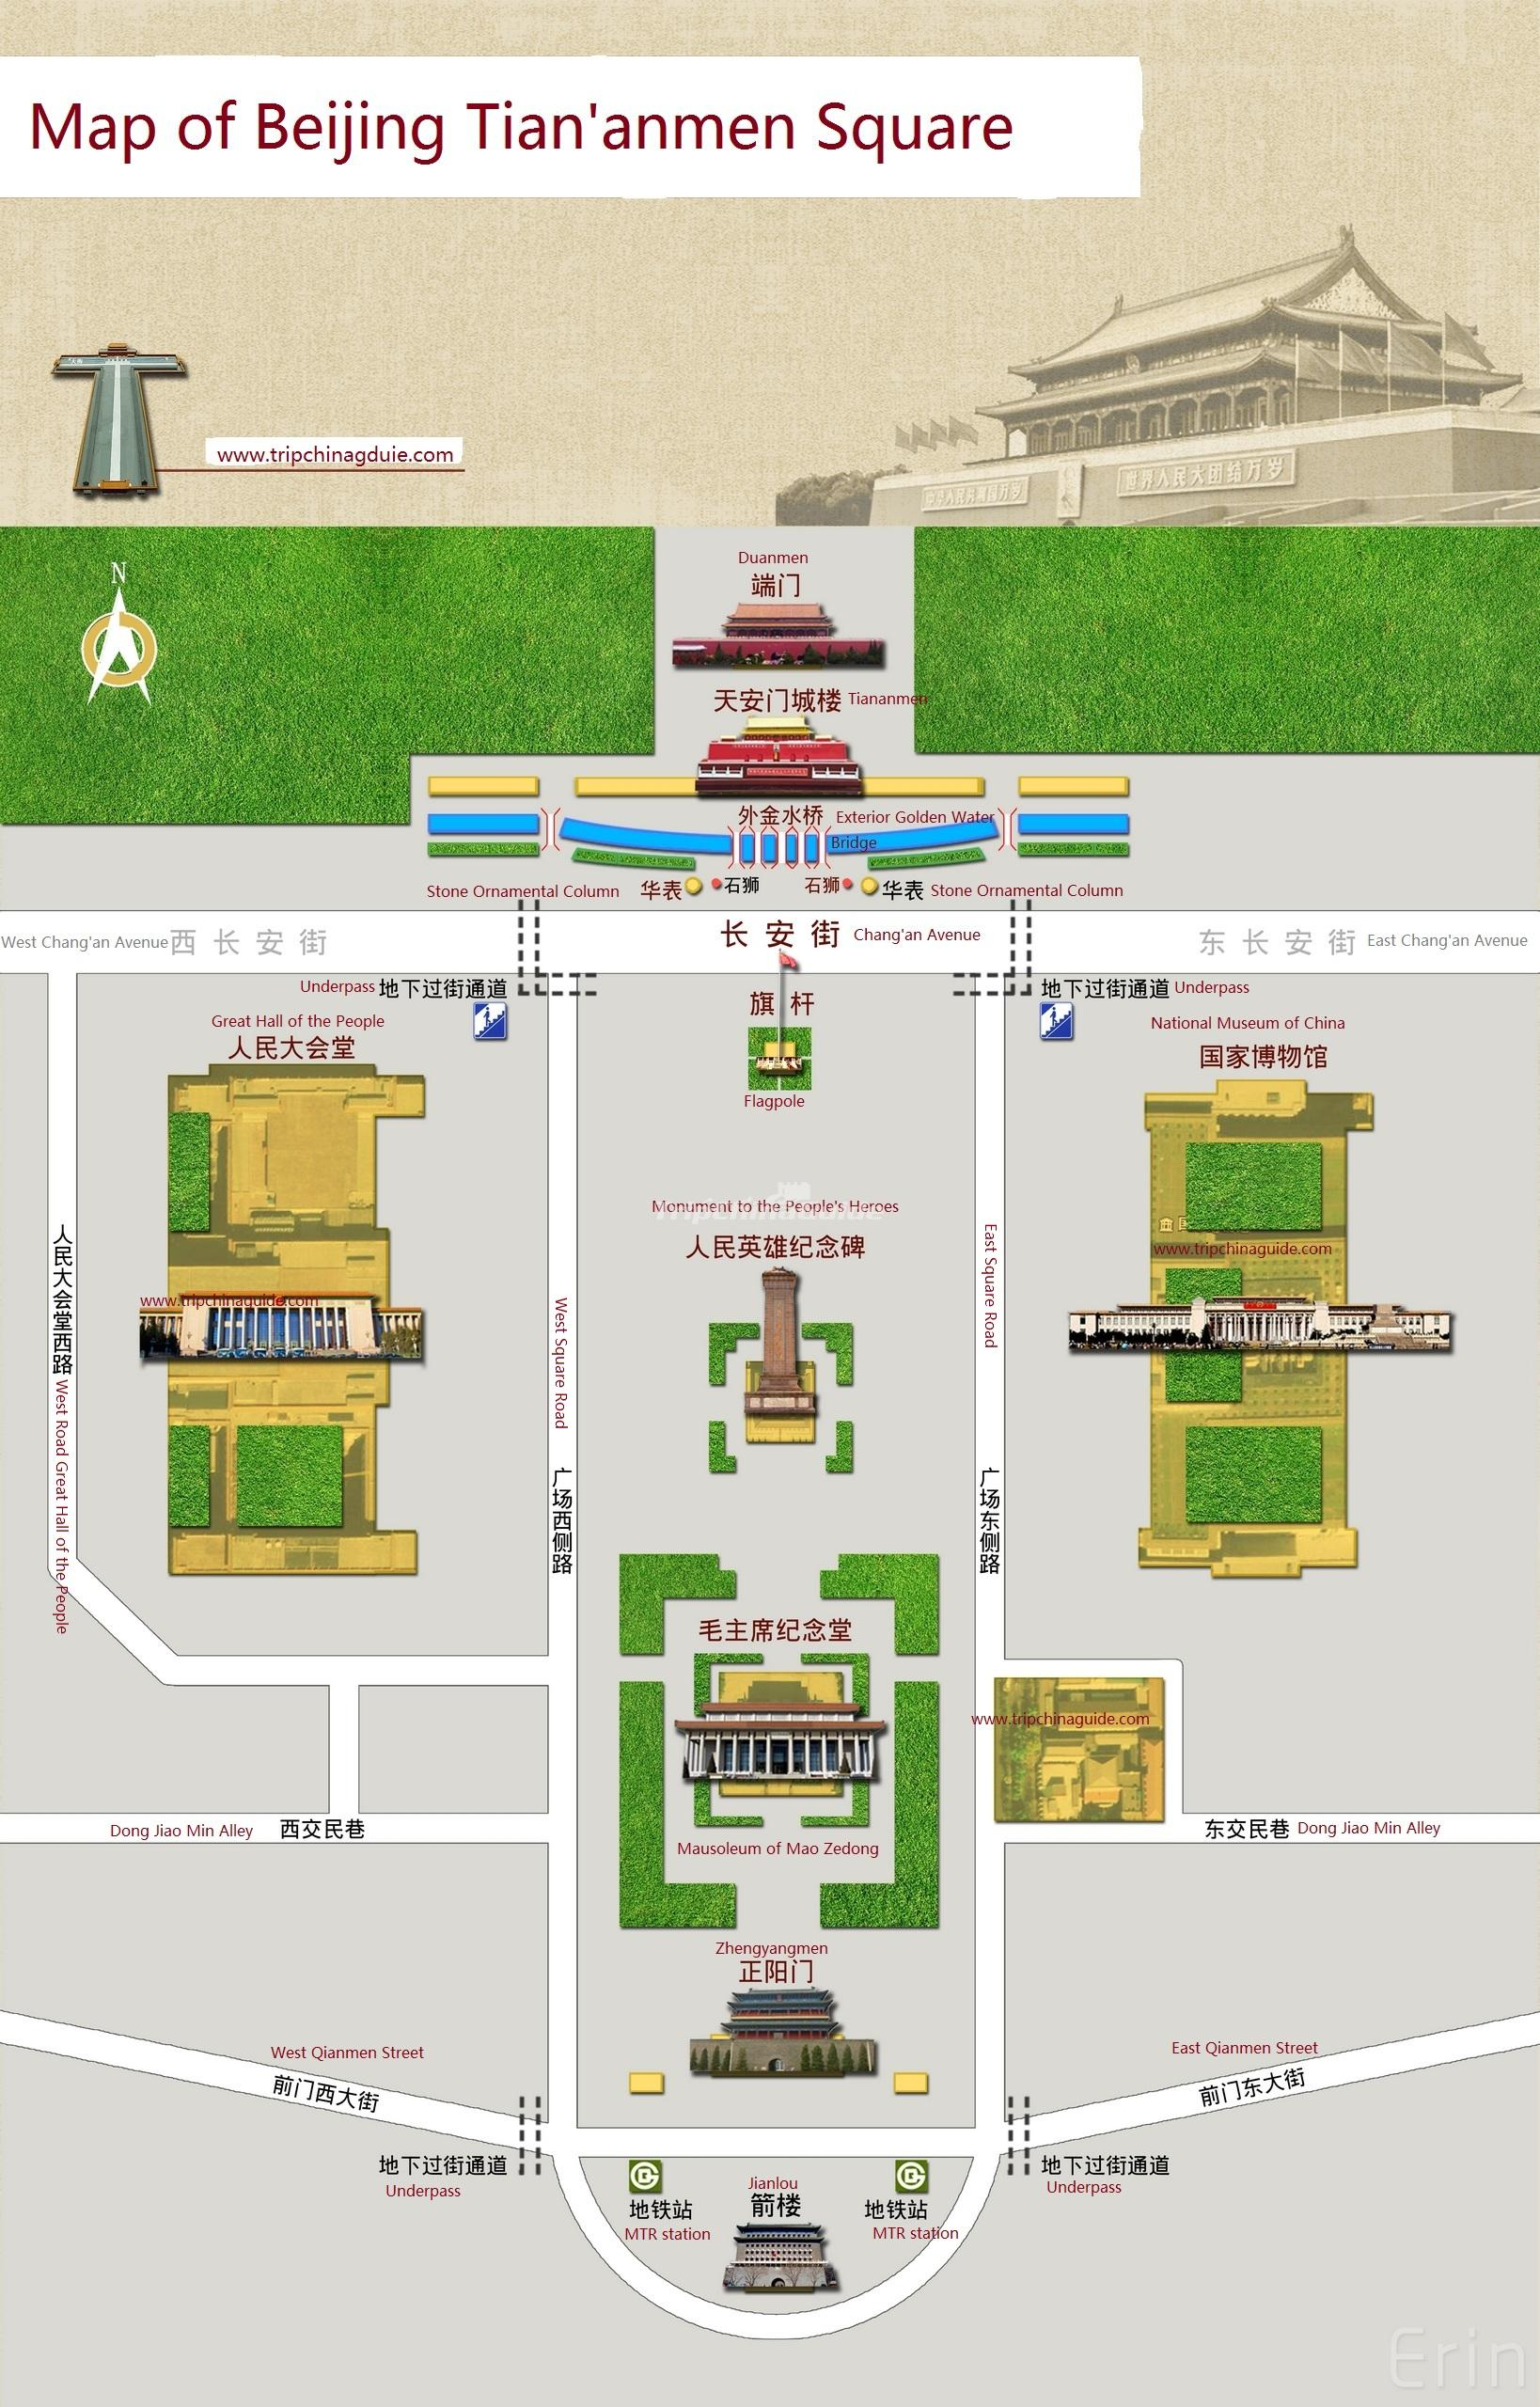 Beijing Tiananmen Square Map